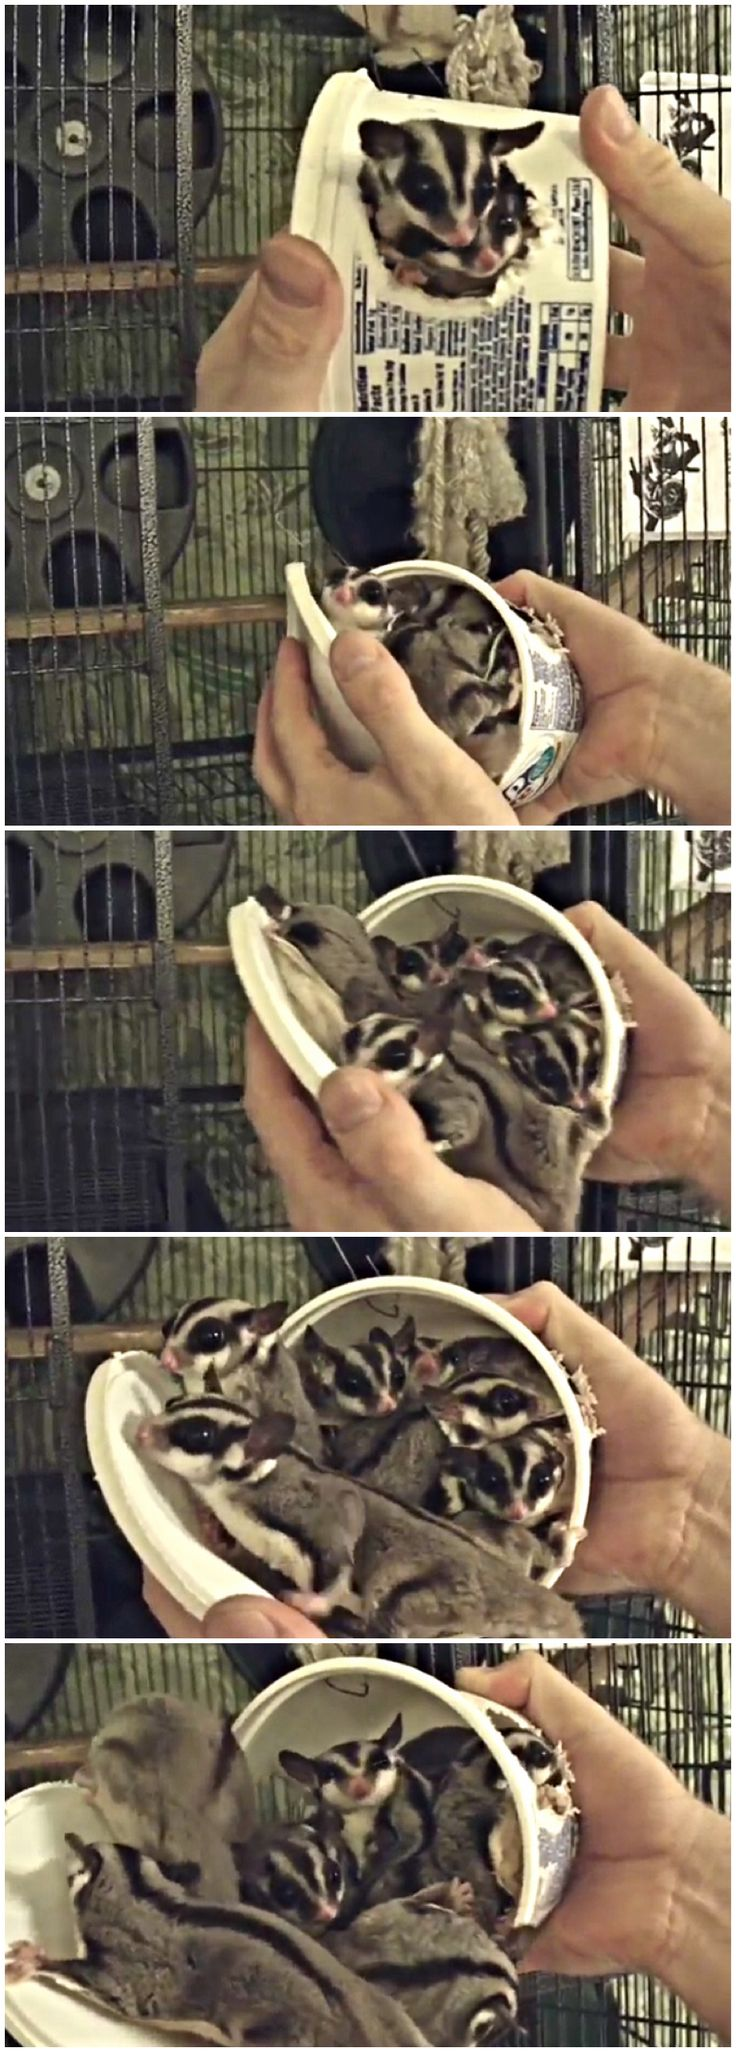 How many sugar gliders can fit inside of a Cool Whip container? (Answer: At least eight!)